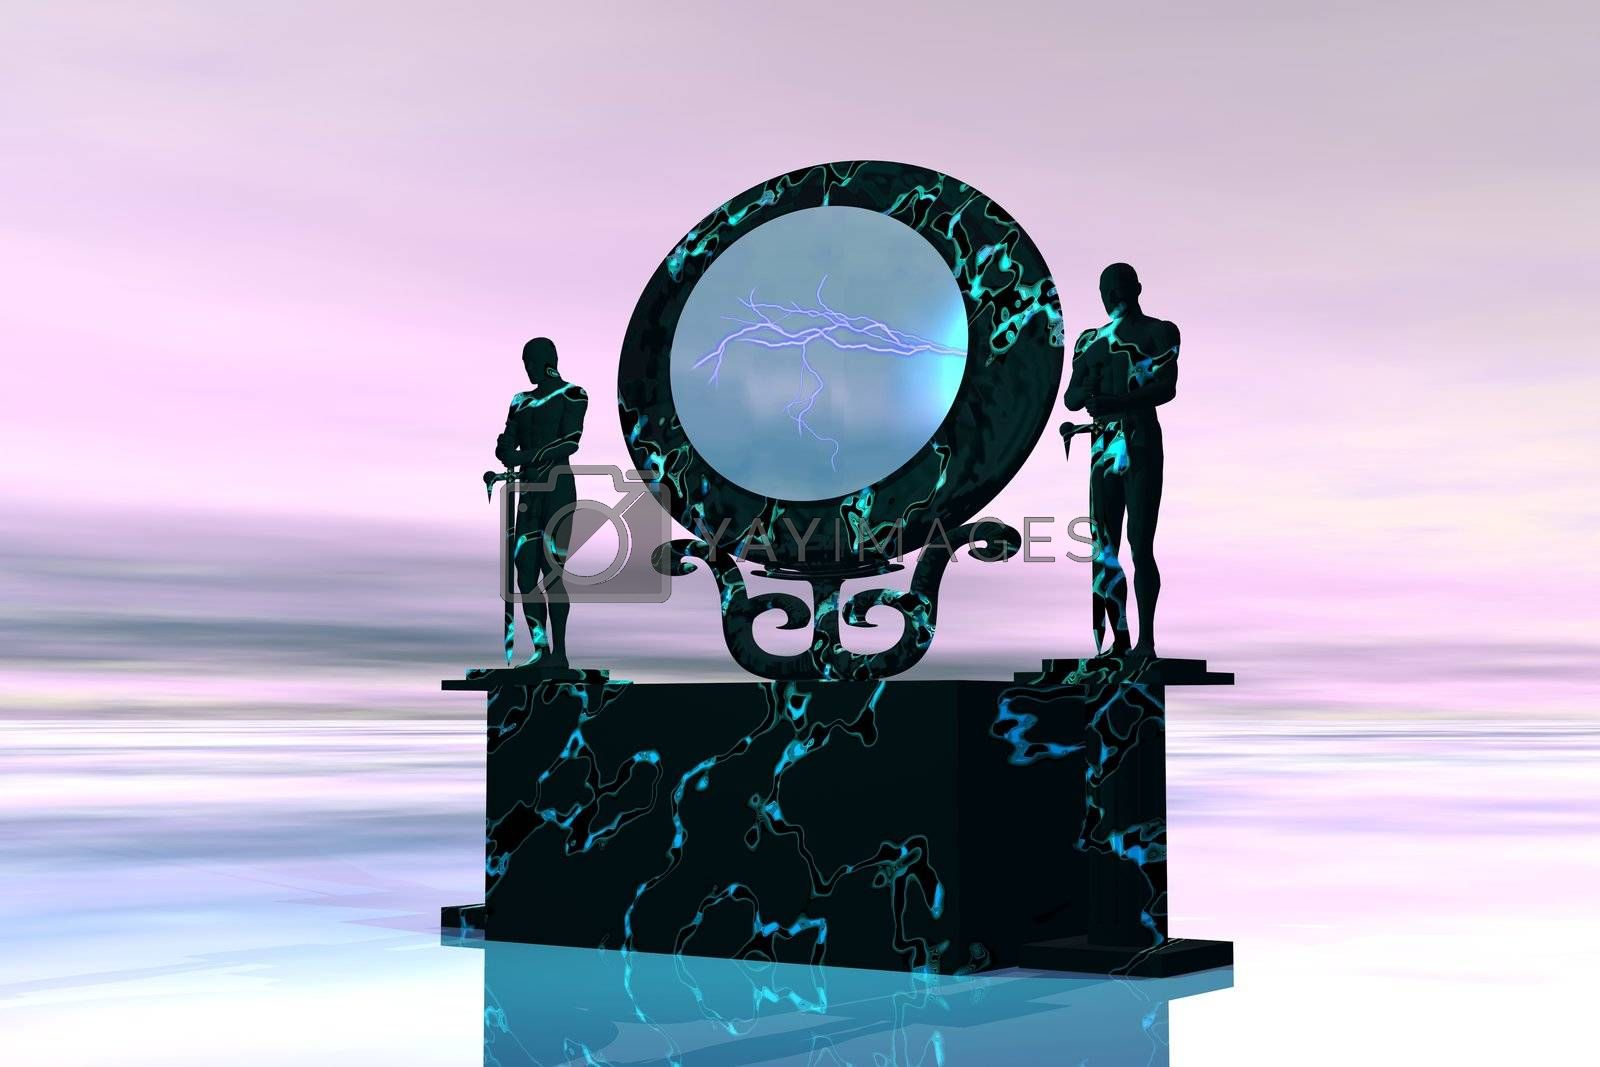 Statues stand near a dimensional portal to another universe.